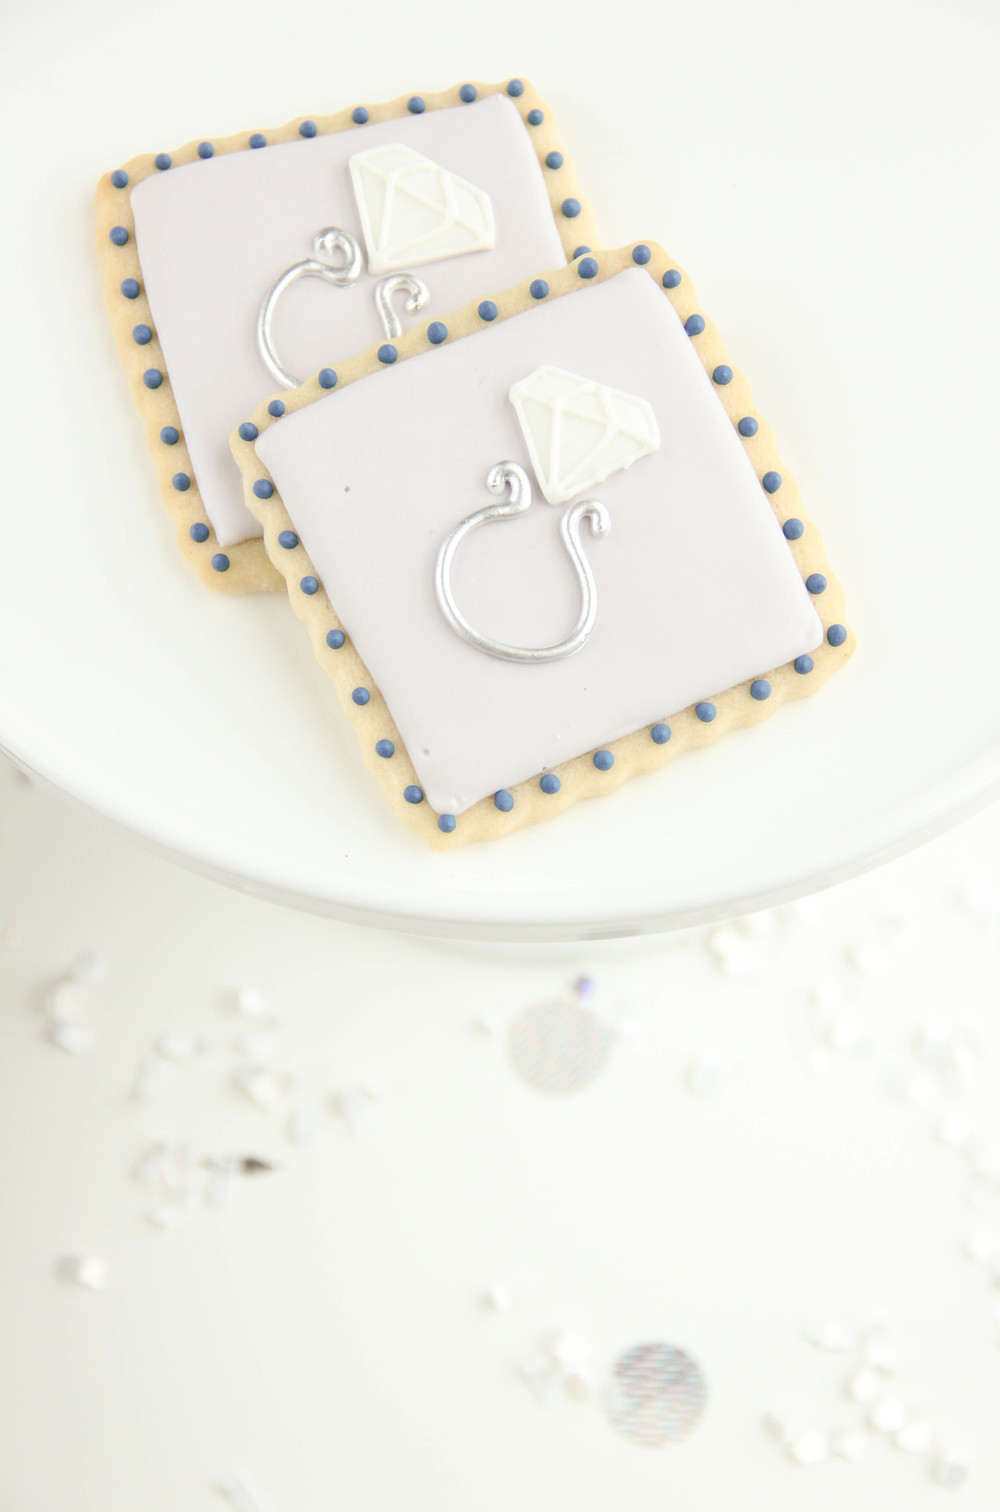 Engagement ring cookie 2.jpg